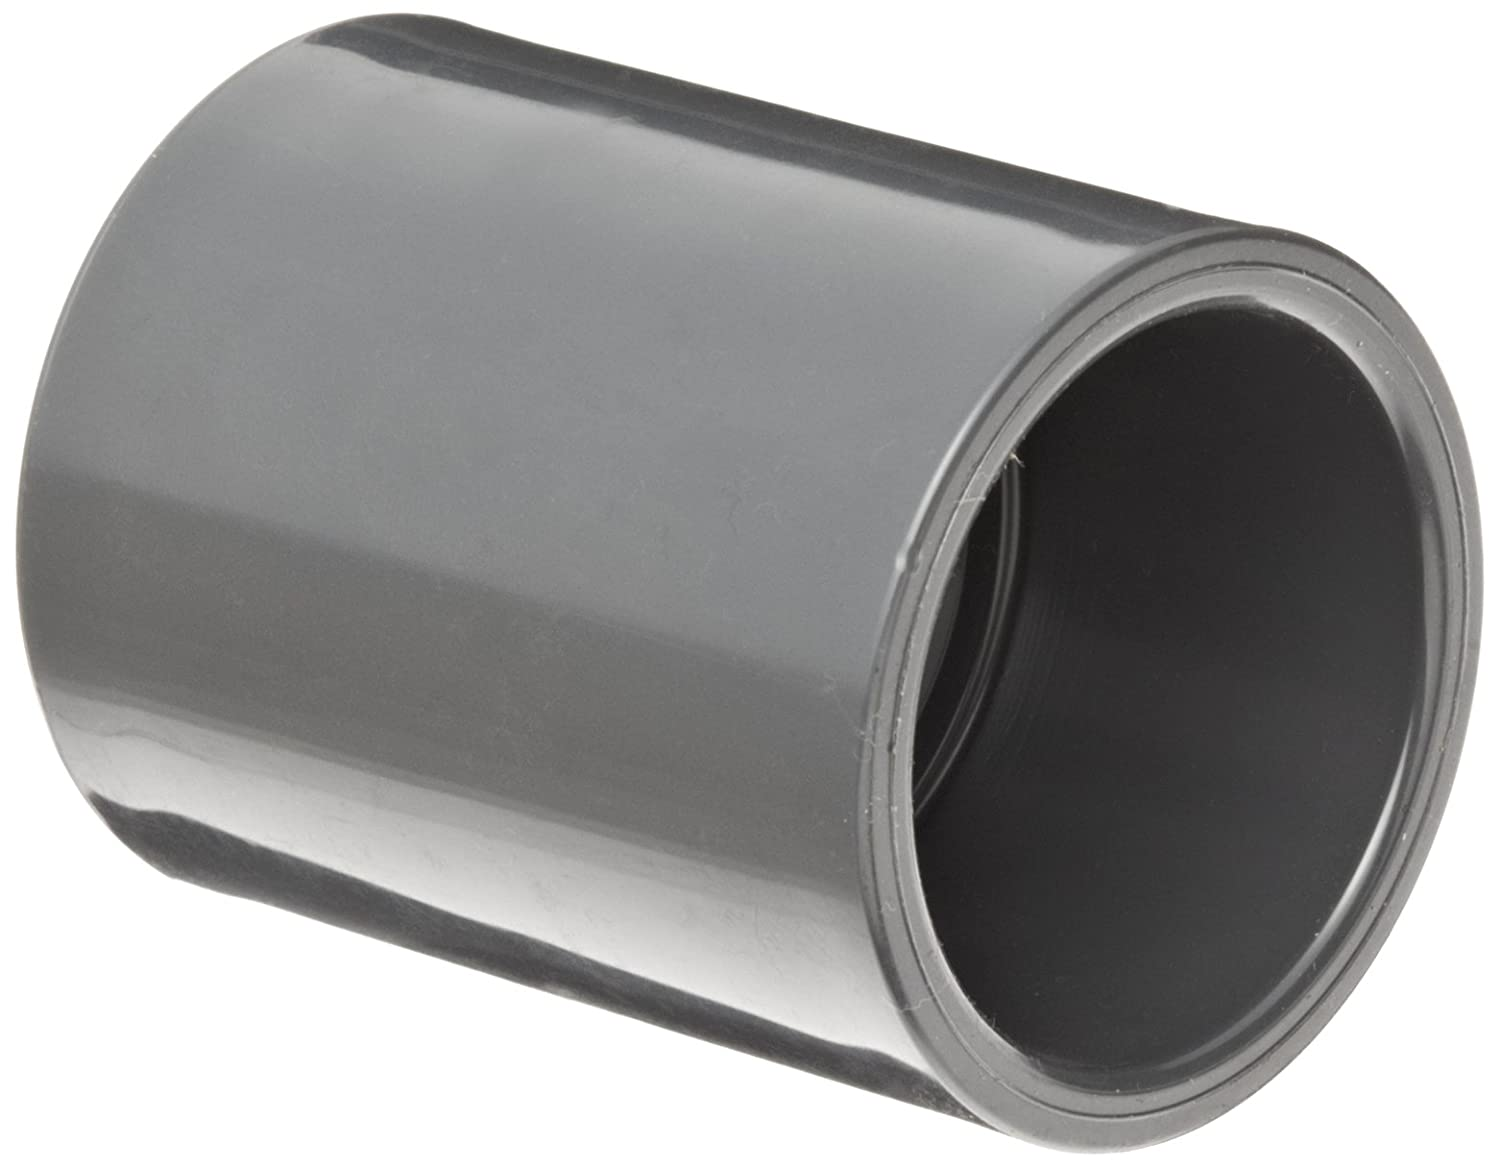 Schedule 80 Coupling 1-1//4 Socket Spears 829 Series PVC Pipe Fitting